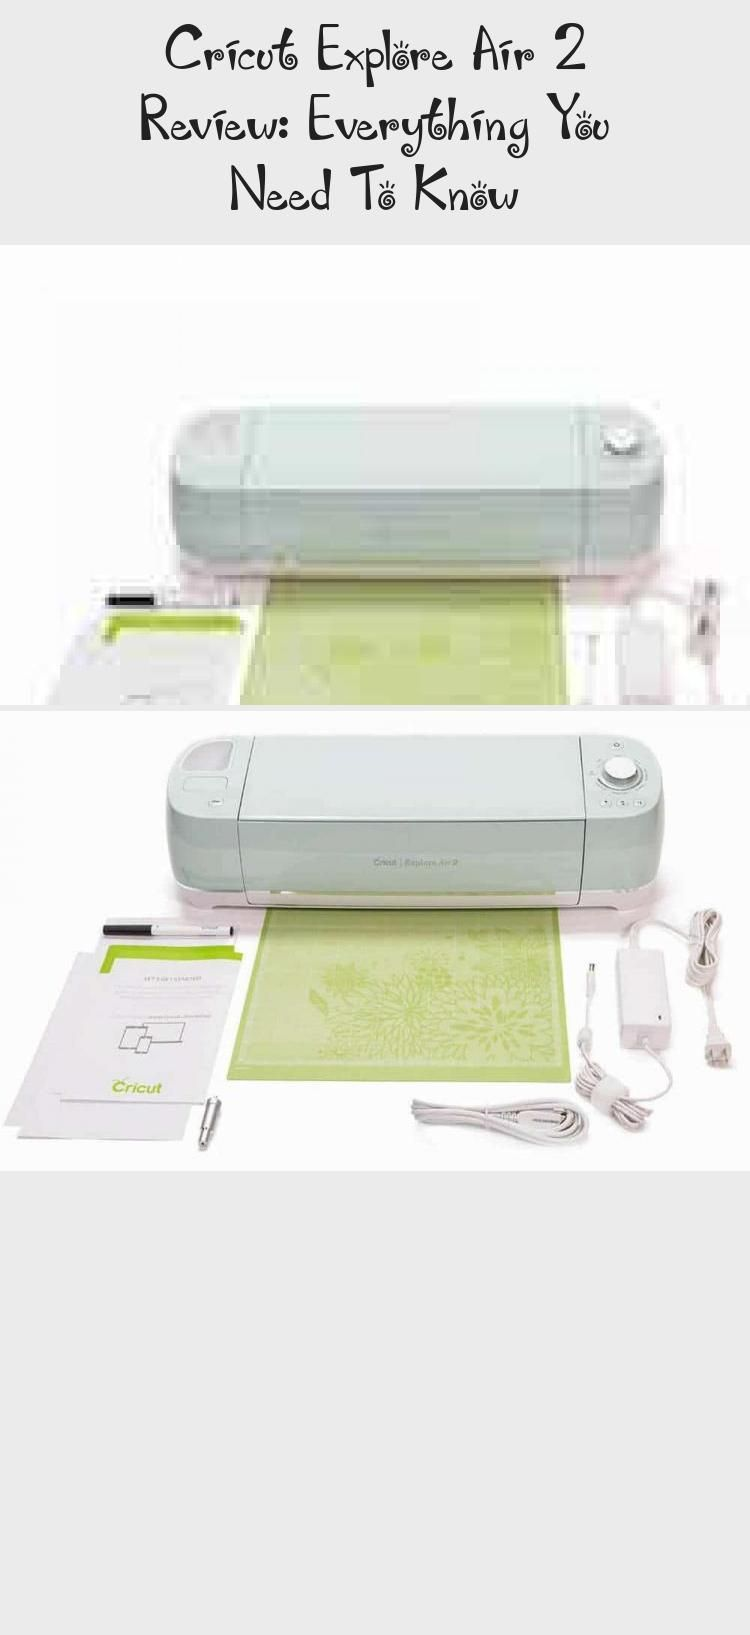 Cricut Explore Air 2 Review: Everything You Need To Know #cricutexploreair2projects Cricut Explore Air 2 Review | Everything You Need to Know #cricutideasEasy #cricutideasFootball #cricutideasProjects #cricutideasForTheBathroom #cricutideasHarryPotter #cricutexploreair2projects